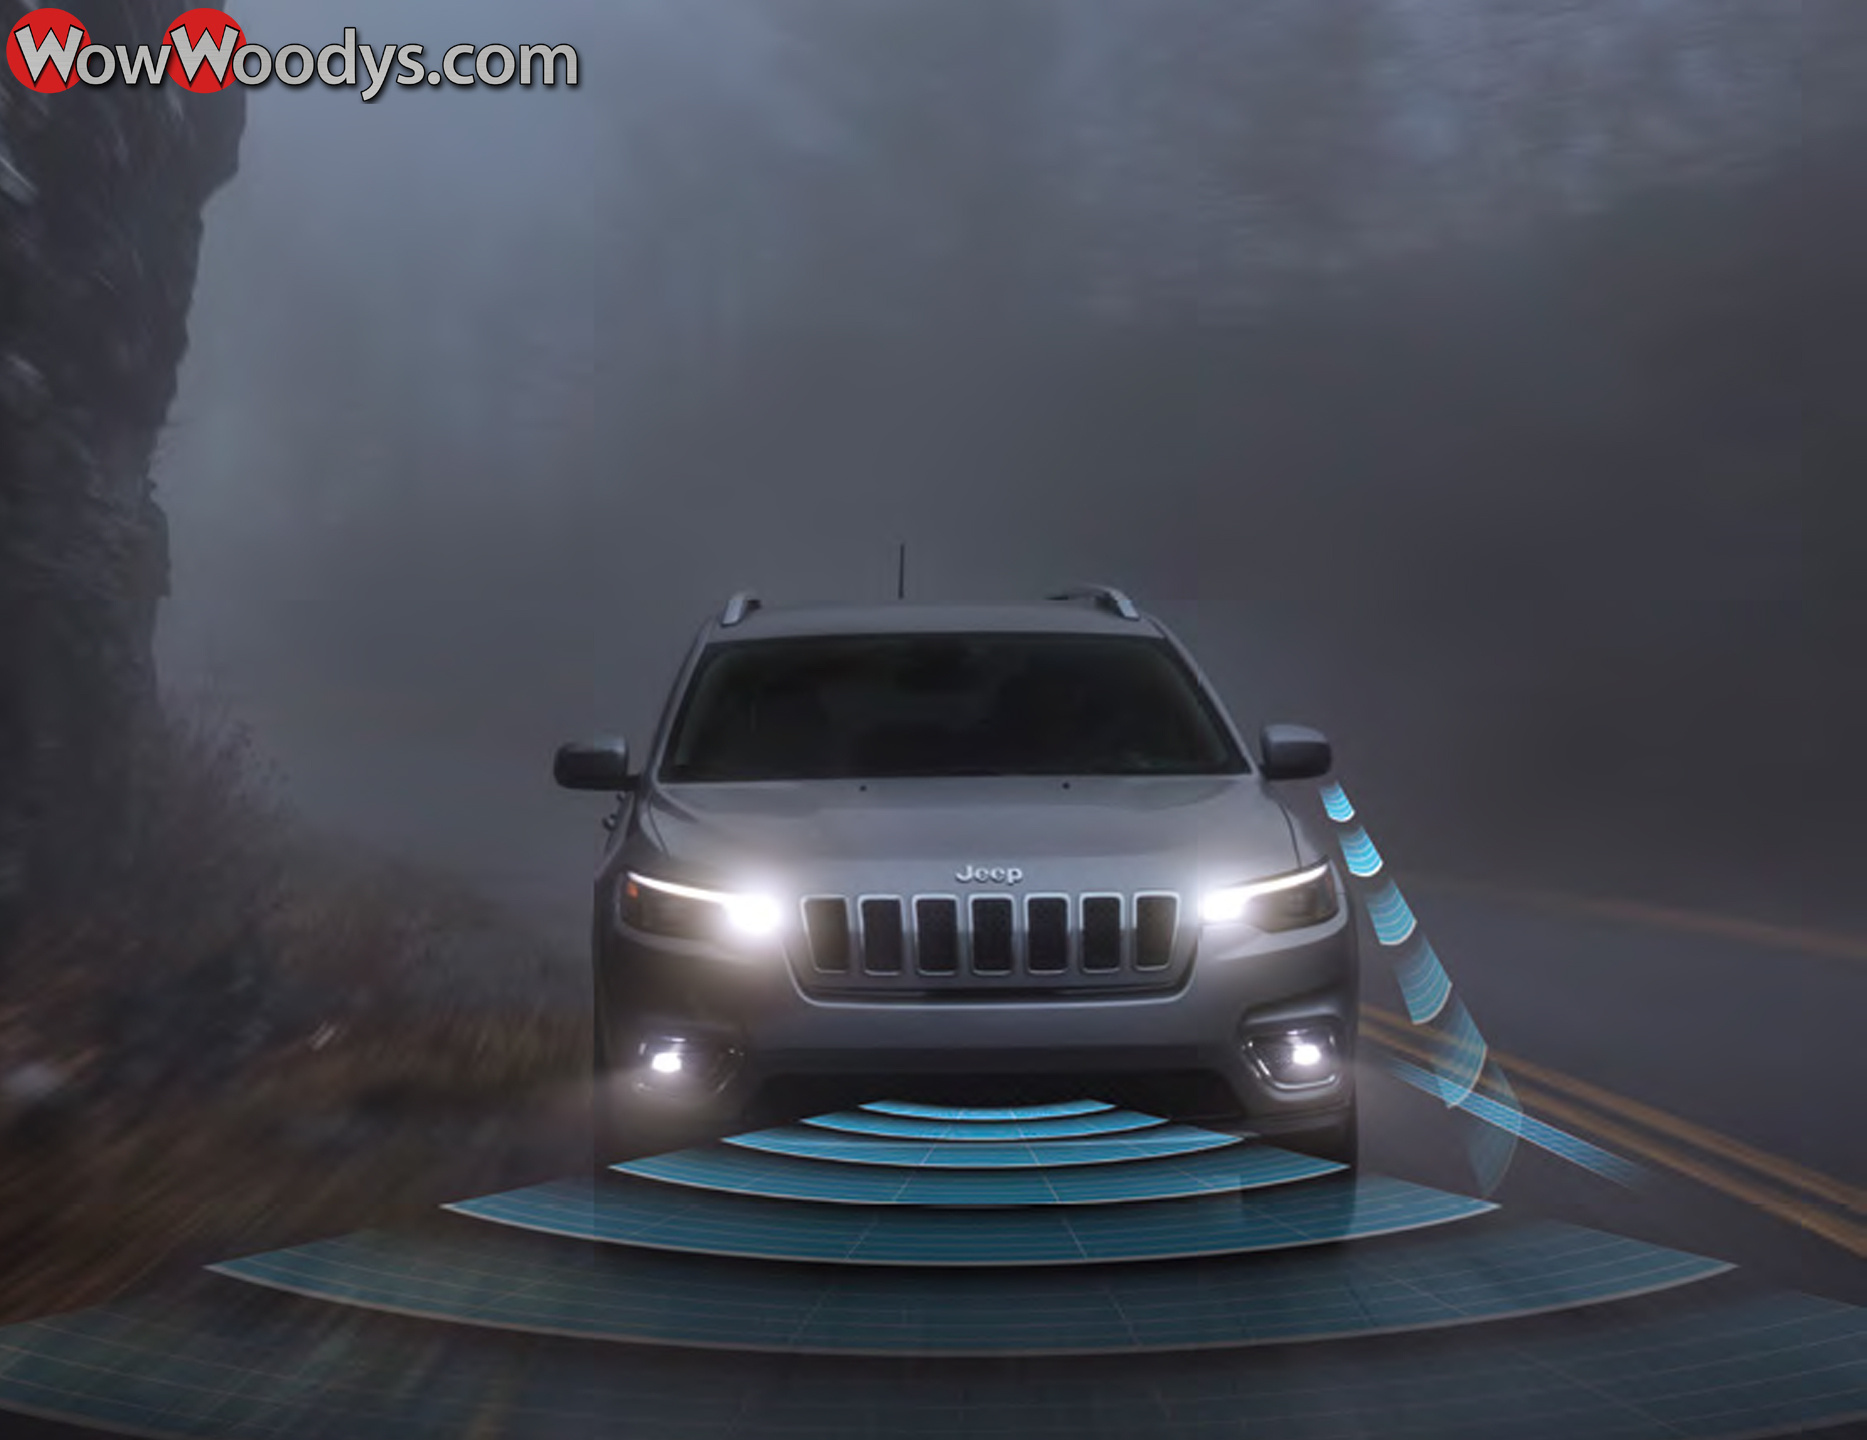 2019 Jeep Cherokee Advanced Safety and Security Features